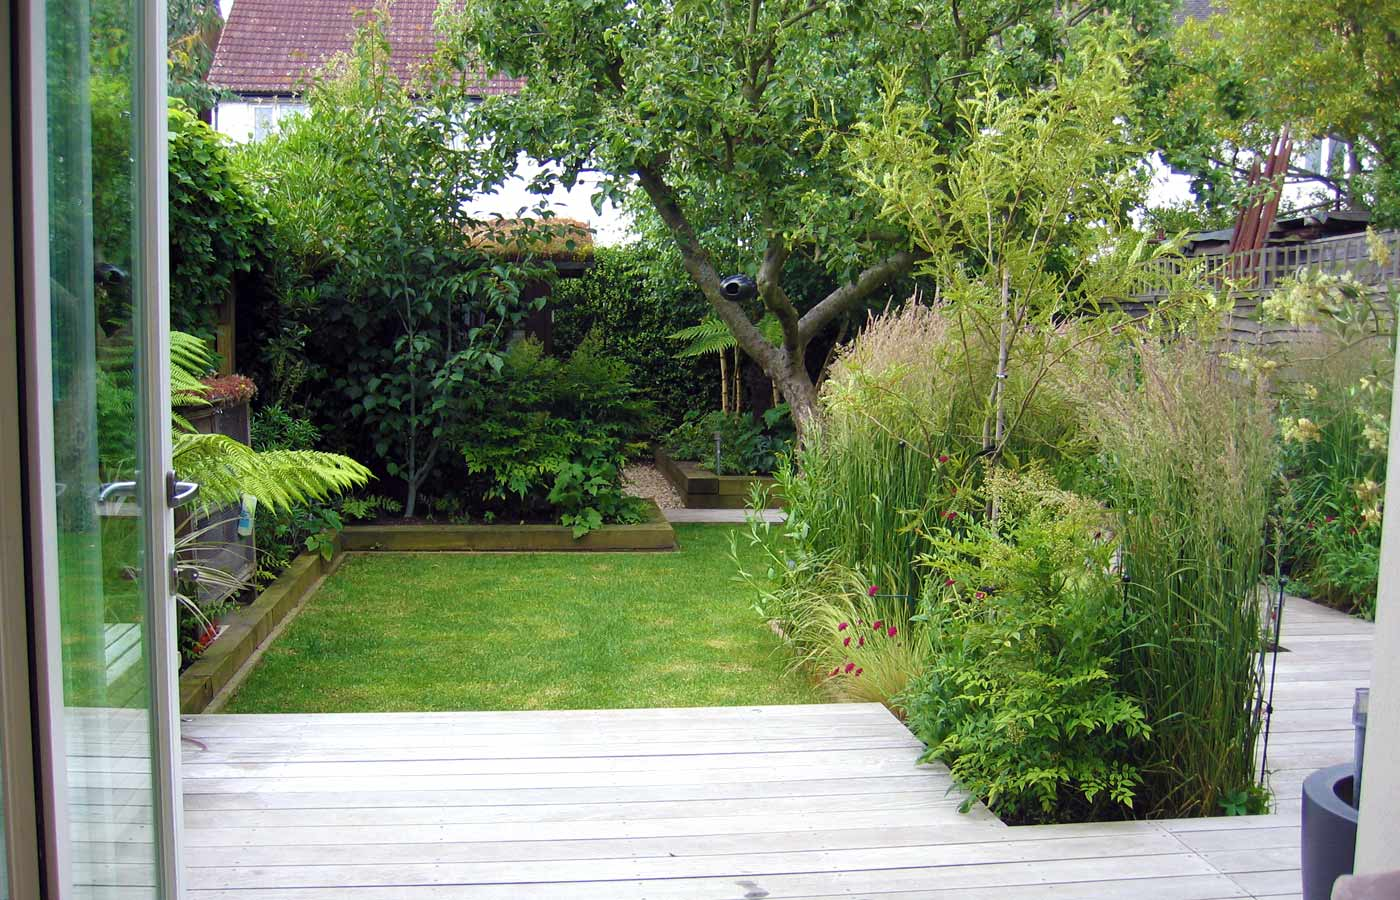 Garden design for small garden with decking for A small garden